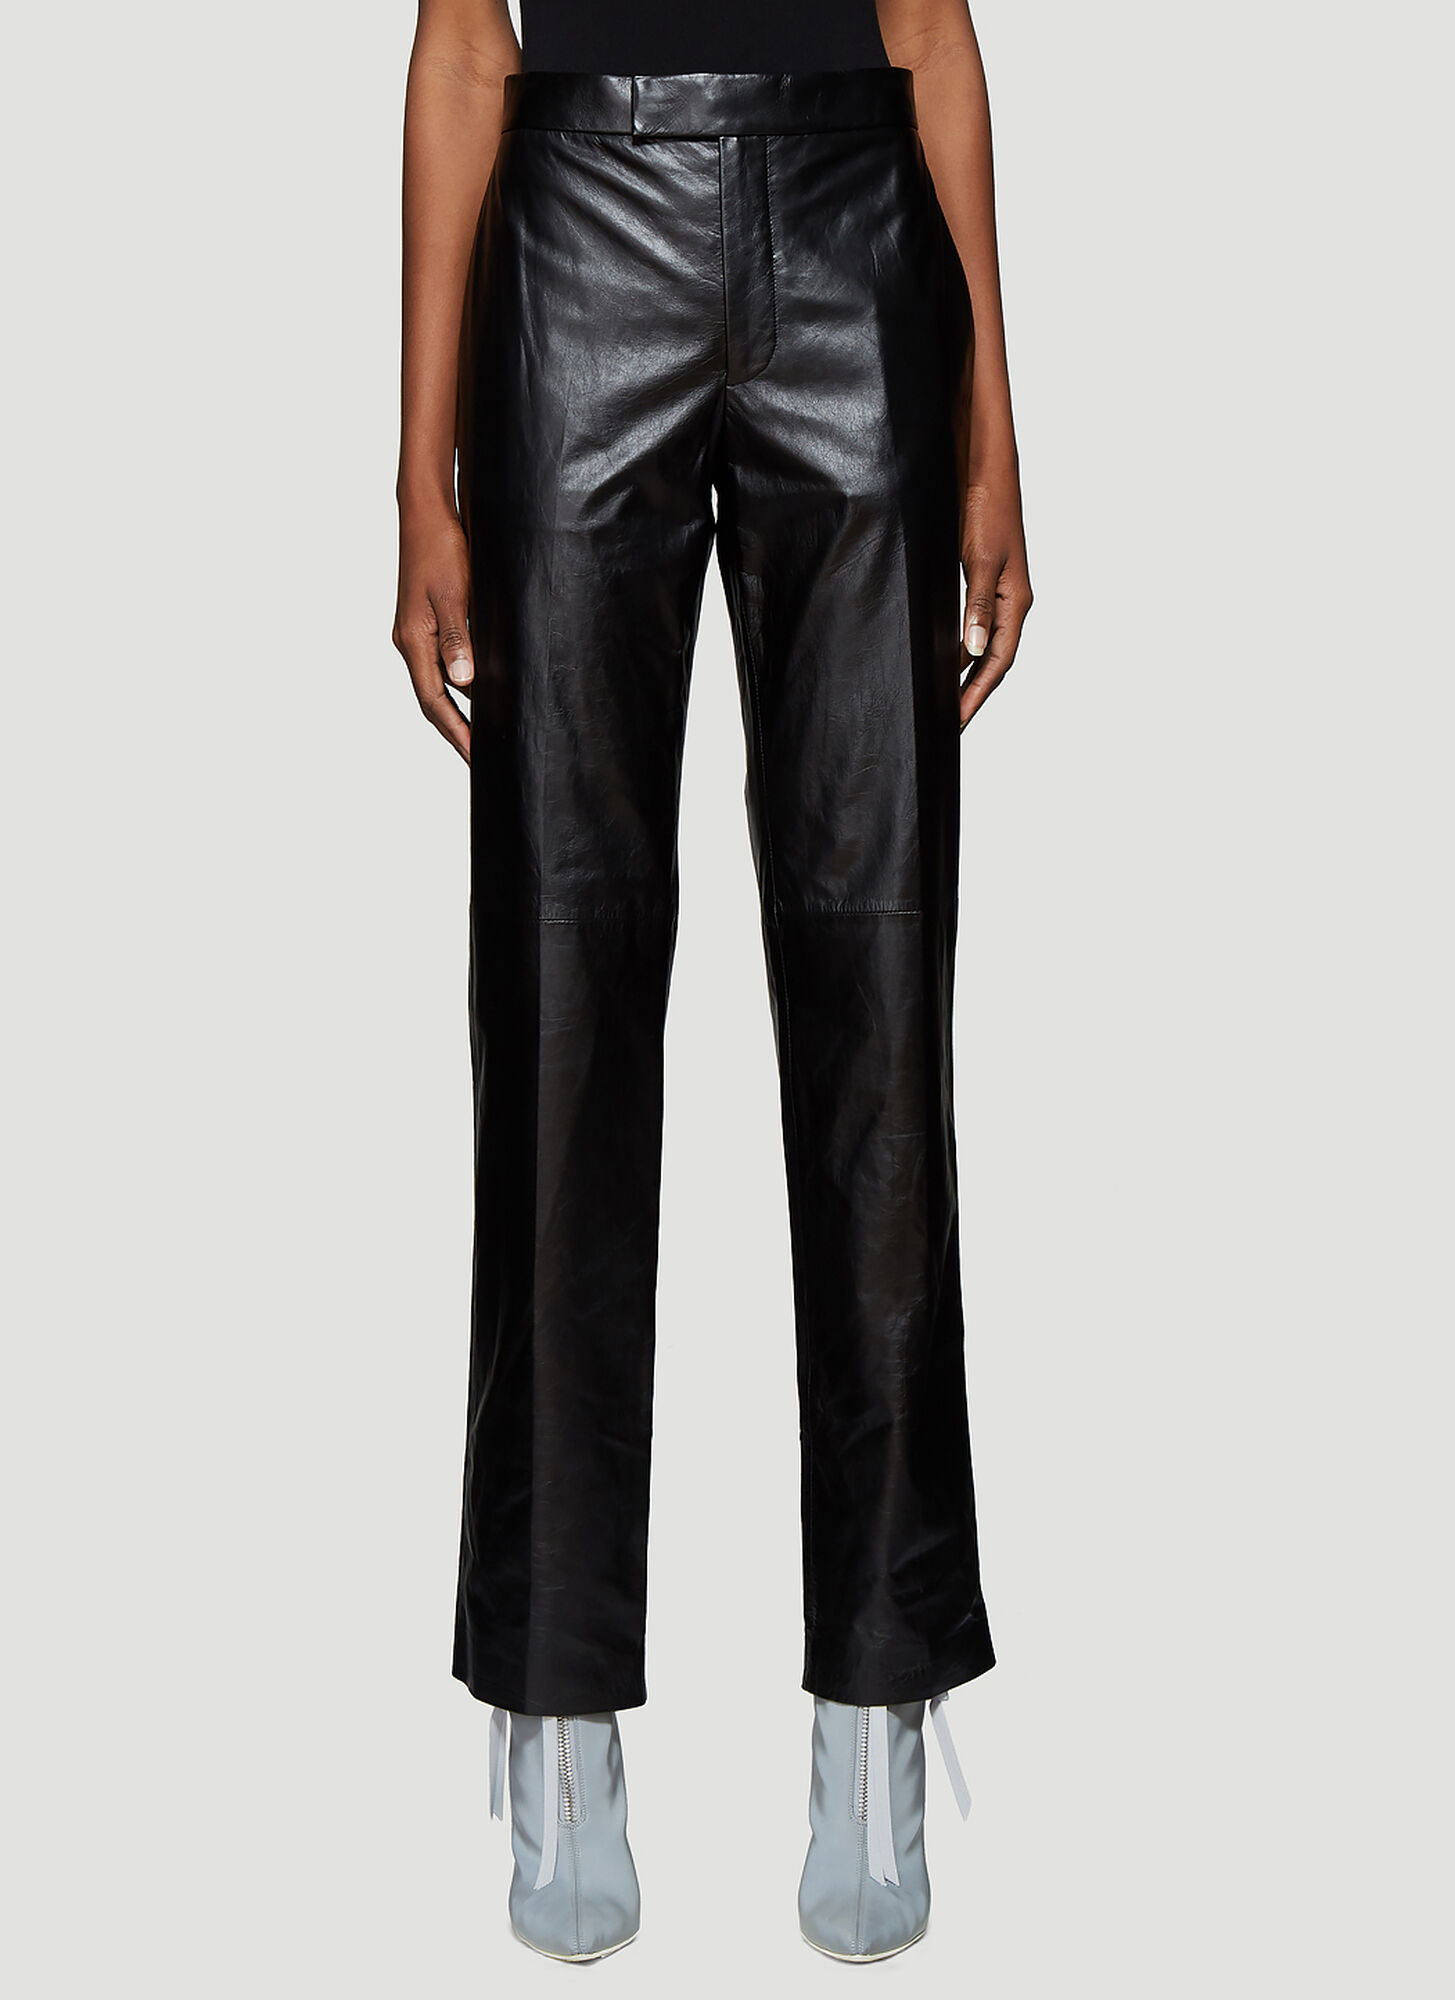 Helmut Lang Leather Straight Leg Pants in Black